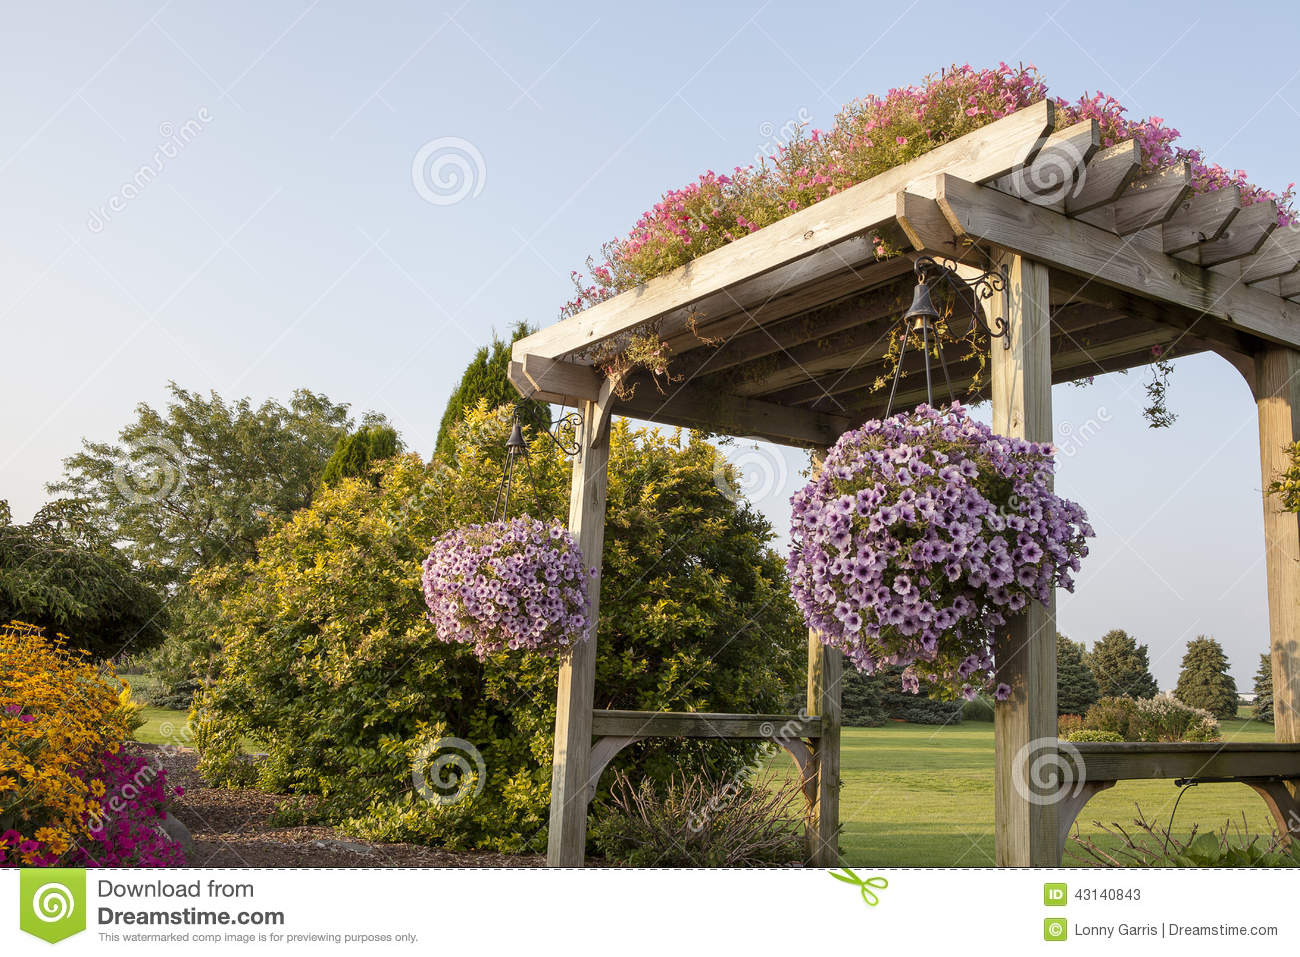 pergola de jardin avec le chemin de marche image stock image du marguerite jardin 43140843. Black Bedroom Furniture Sets. Home Design Ideas